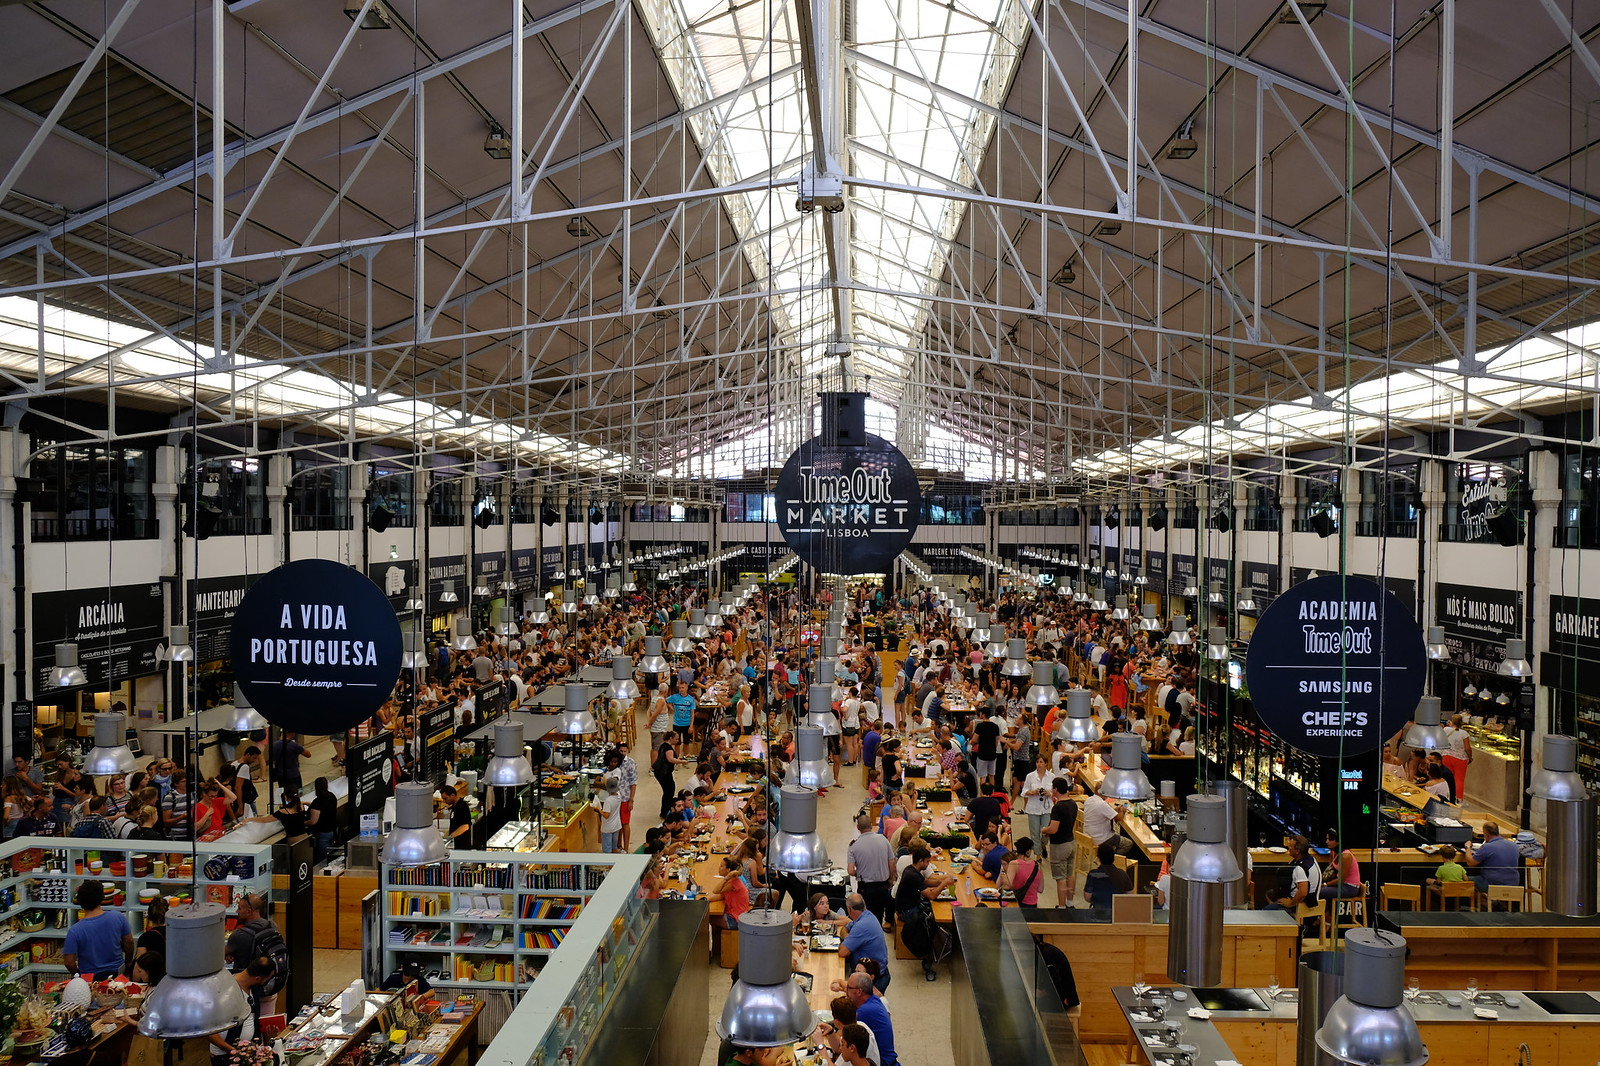 Time Out Market Interior | One Day in Lisbon